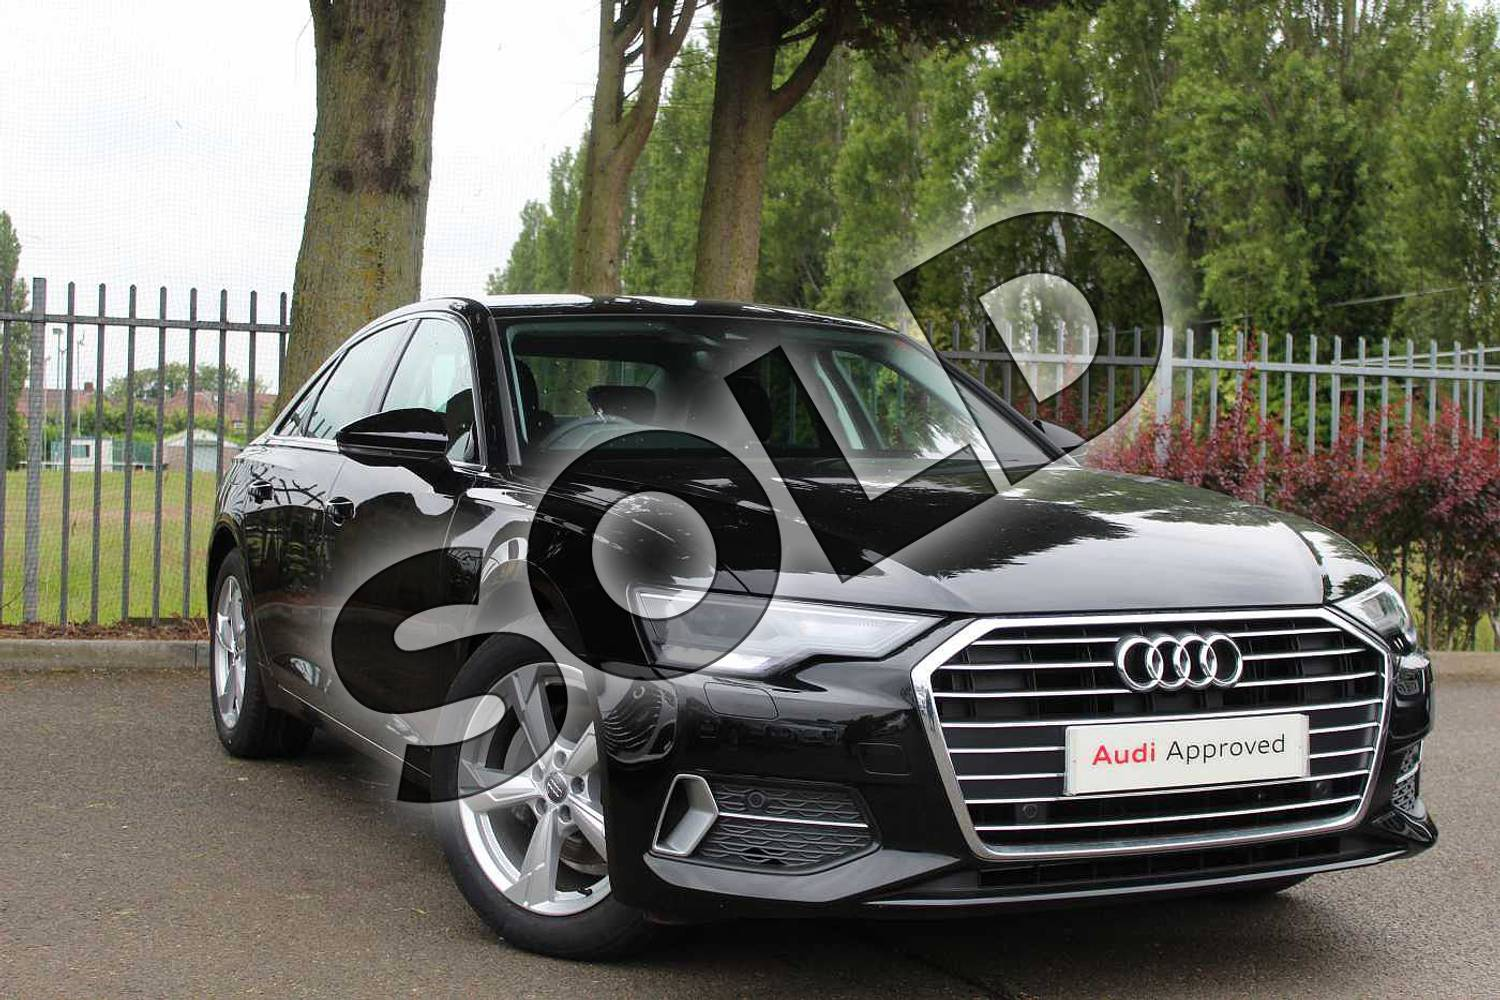 2019 Audi A6 Diesel Saloon Diesel 40 TDI Sport 4dr S Tronic in Myth Black Metallic at Coventry Audi